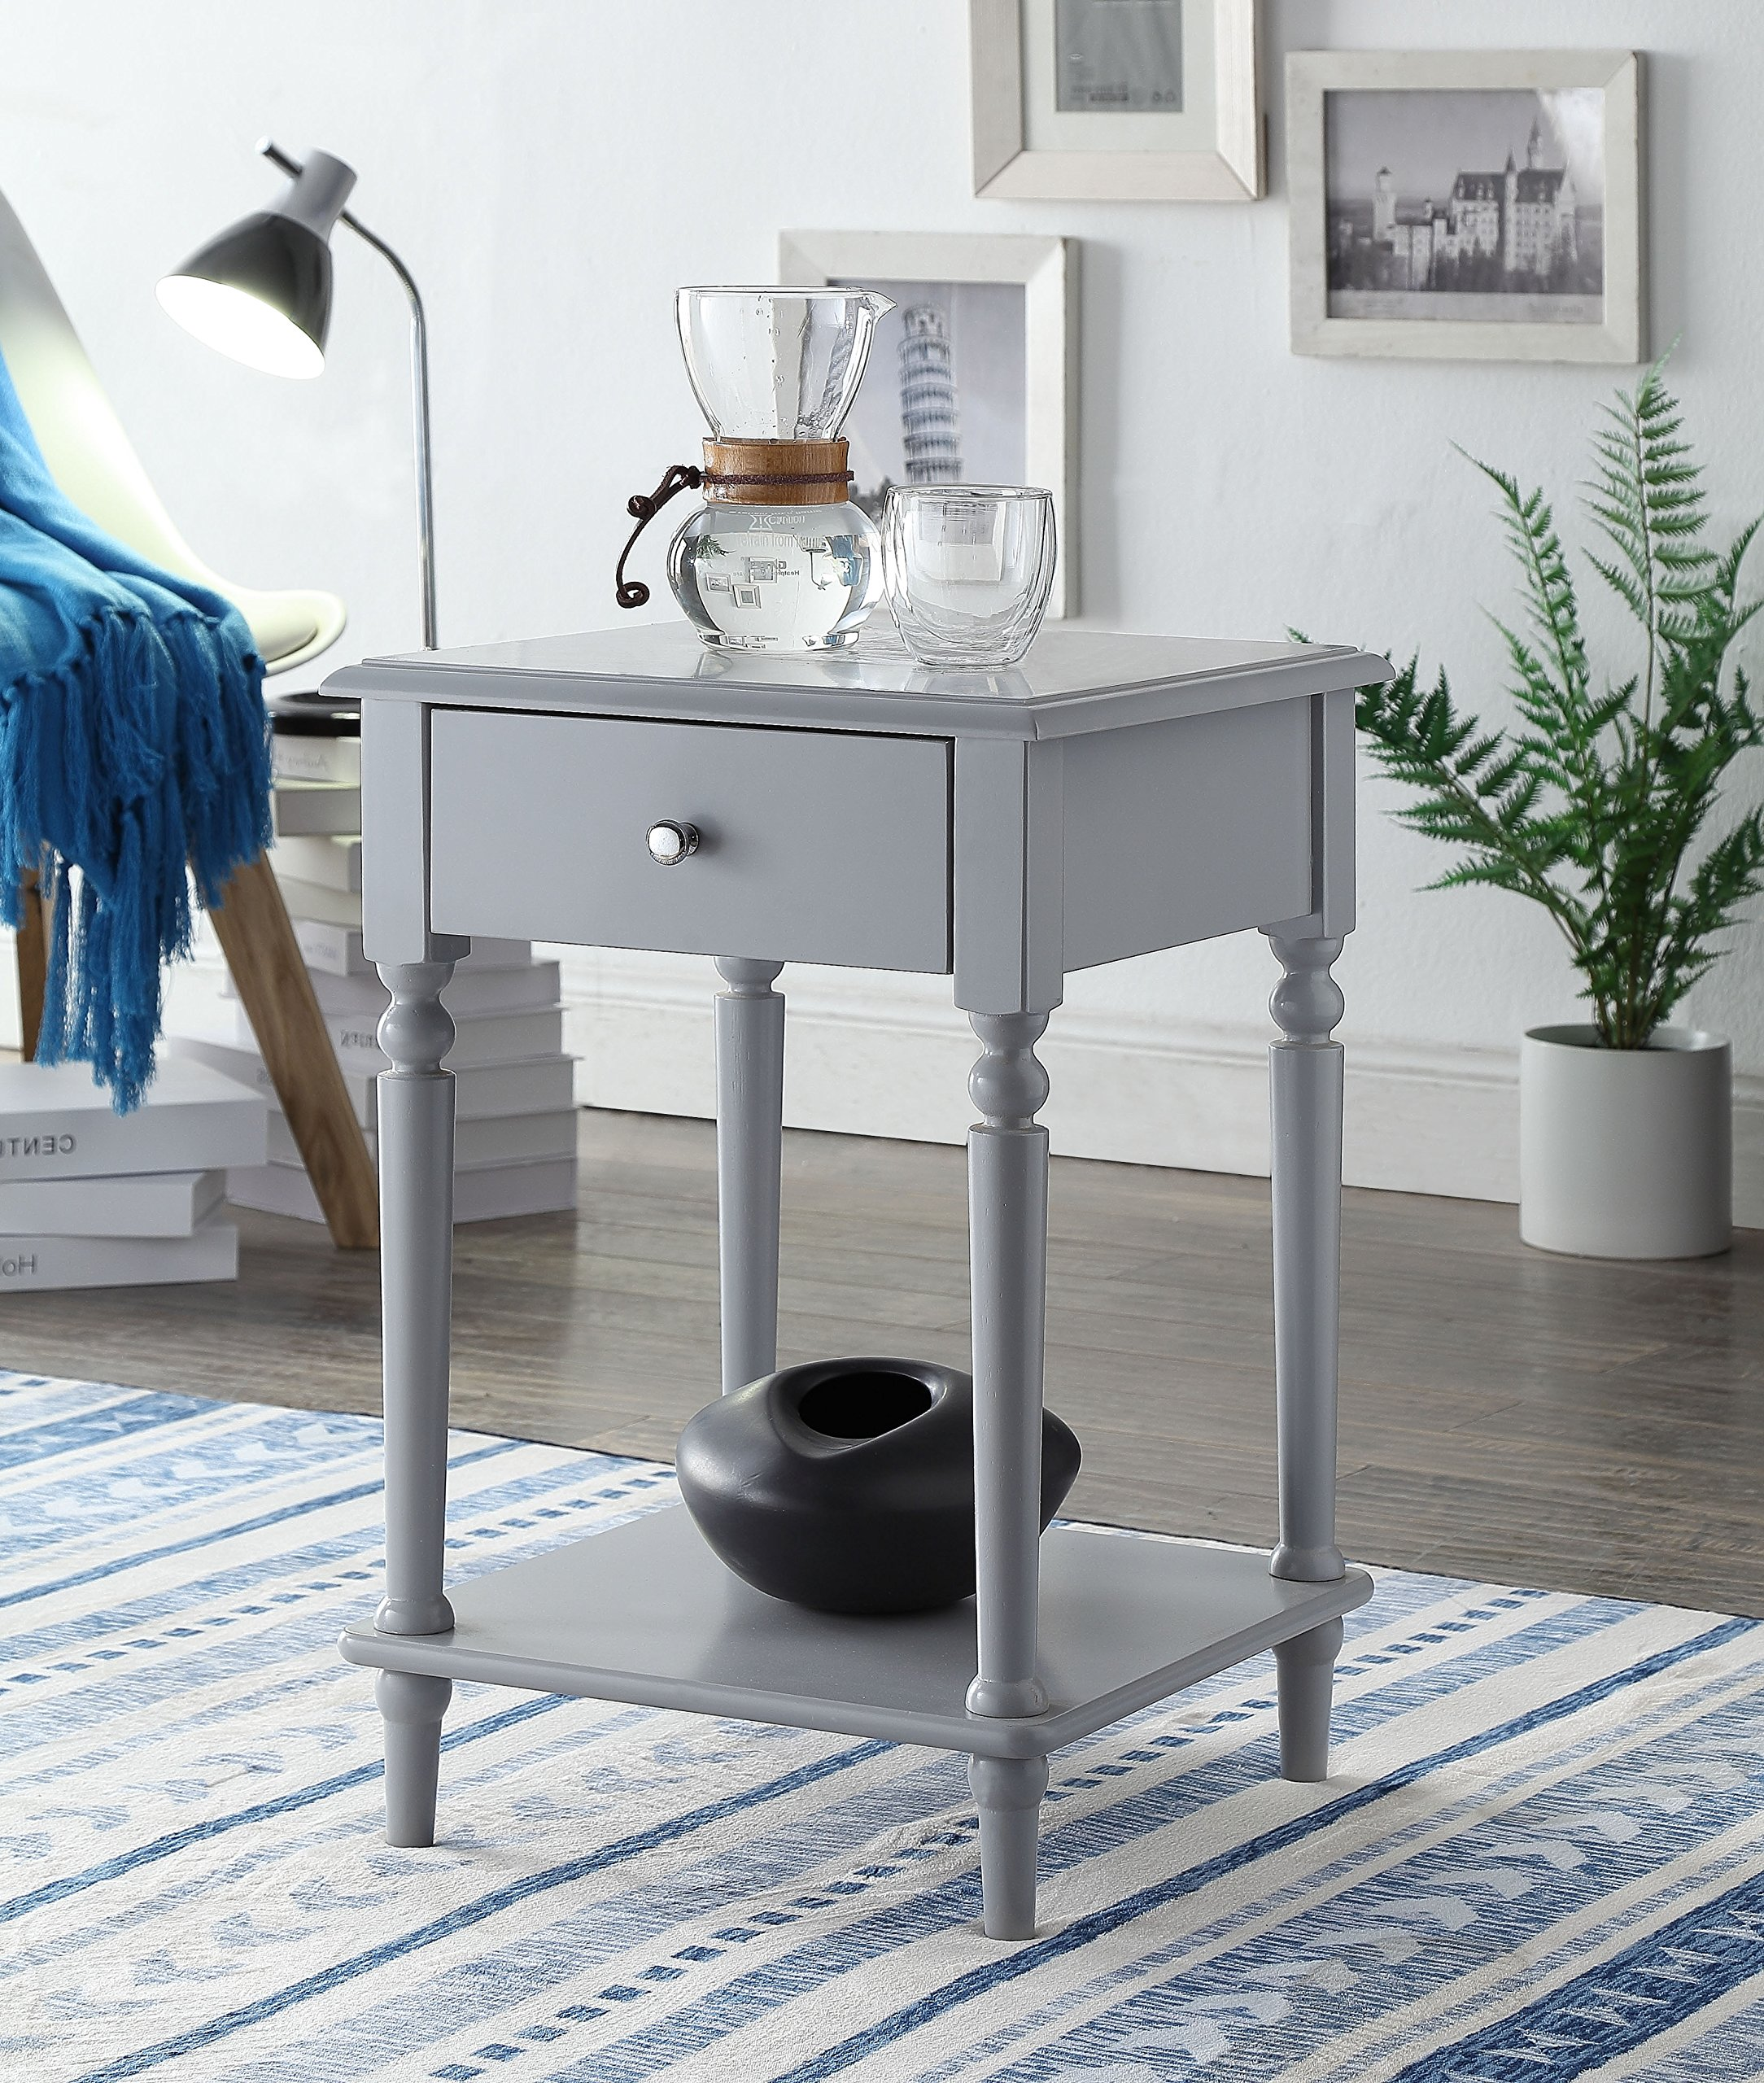 Grey Finish Wooden Turned Legs Nightstand Side End Table with Drawer by eHomeProducts - Color: Grey Material: MDF/Hardwood, Solid wood legs Features turned wood legs with a bottom shelf for extra space - nightstands, bedroom-furniture, bedroom - A1Dt5RdvwuL -